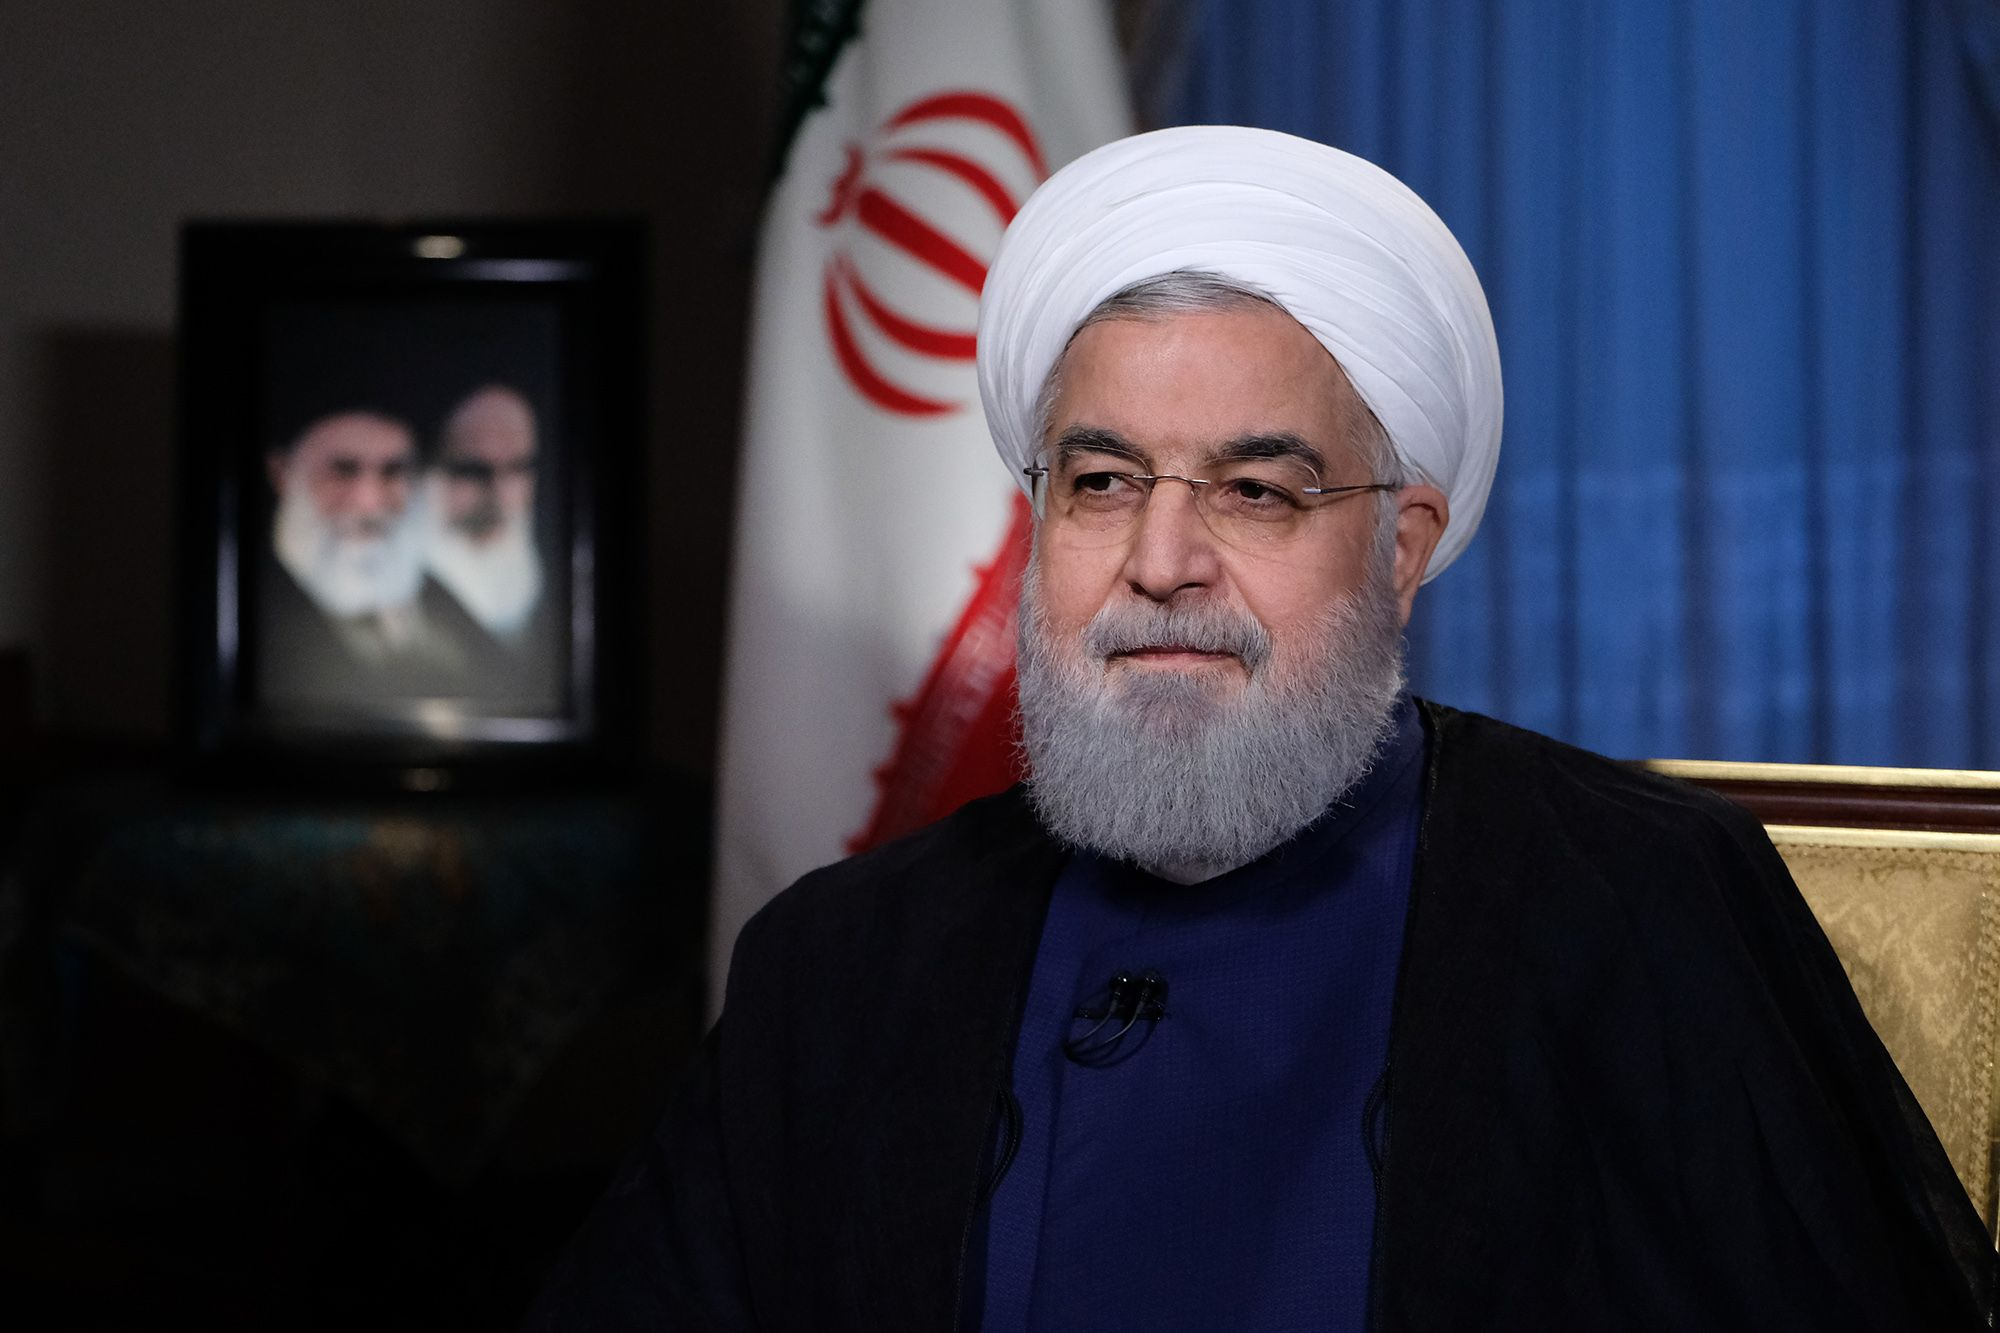 A handout picture made available by the presidential office shows, Iranian President Hassan Rouhani during a live TV interview in Tehran, Iran on Aug. 6, 2018.